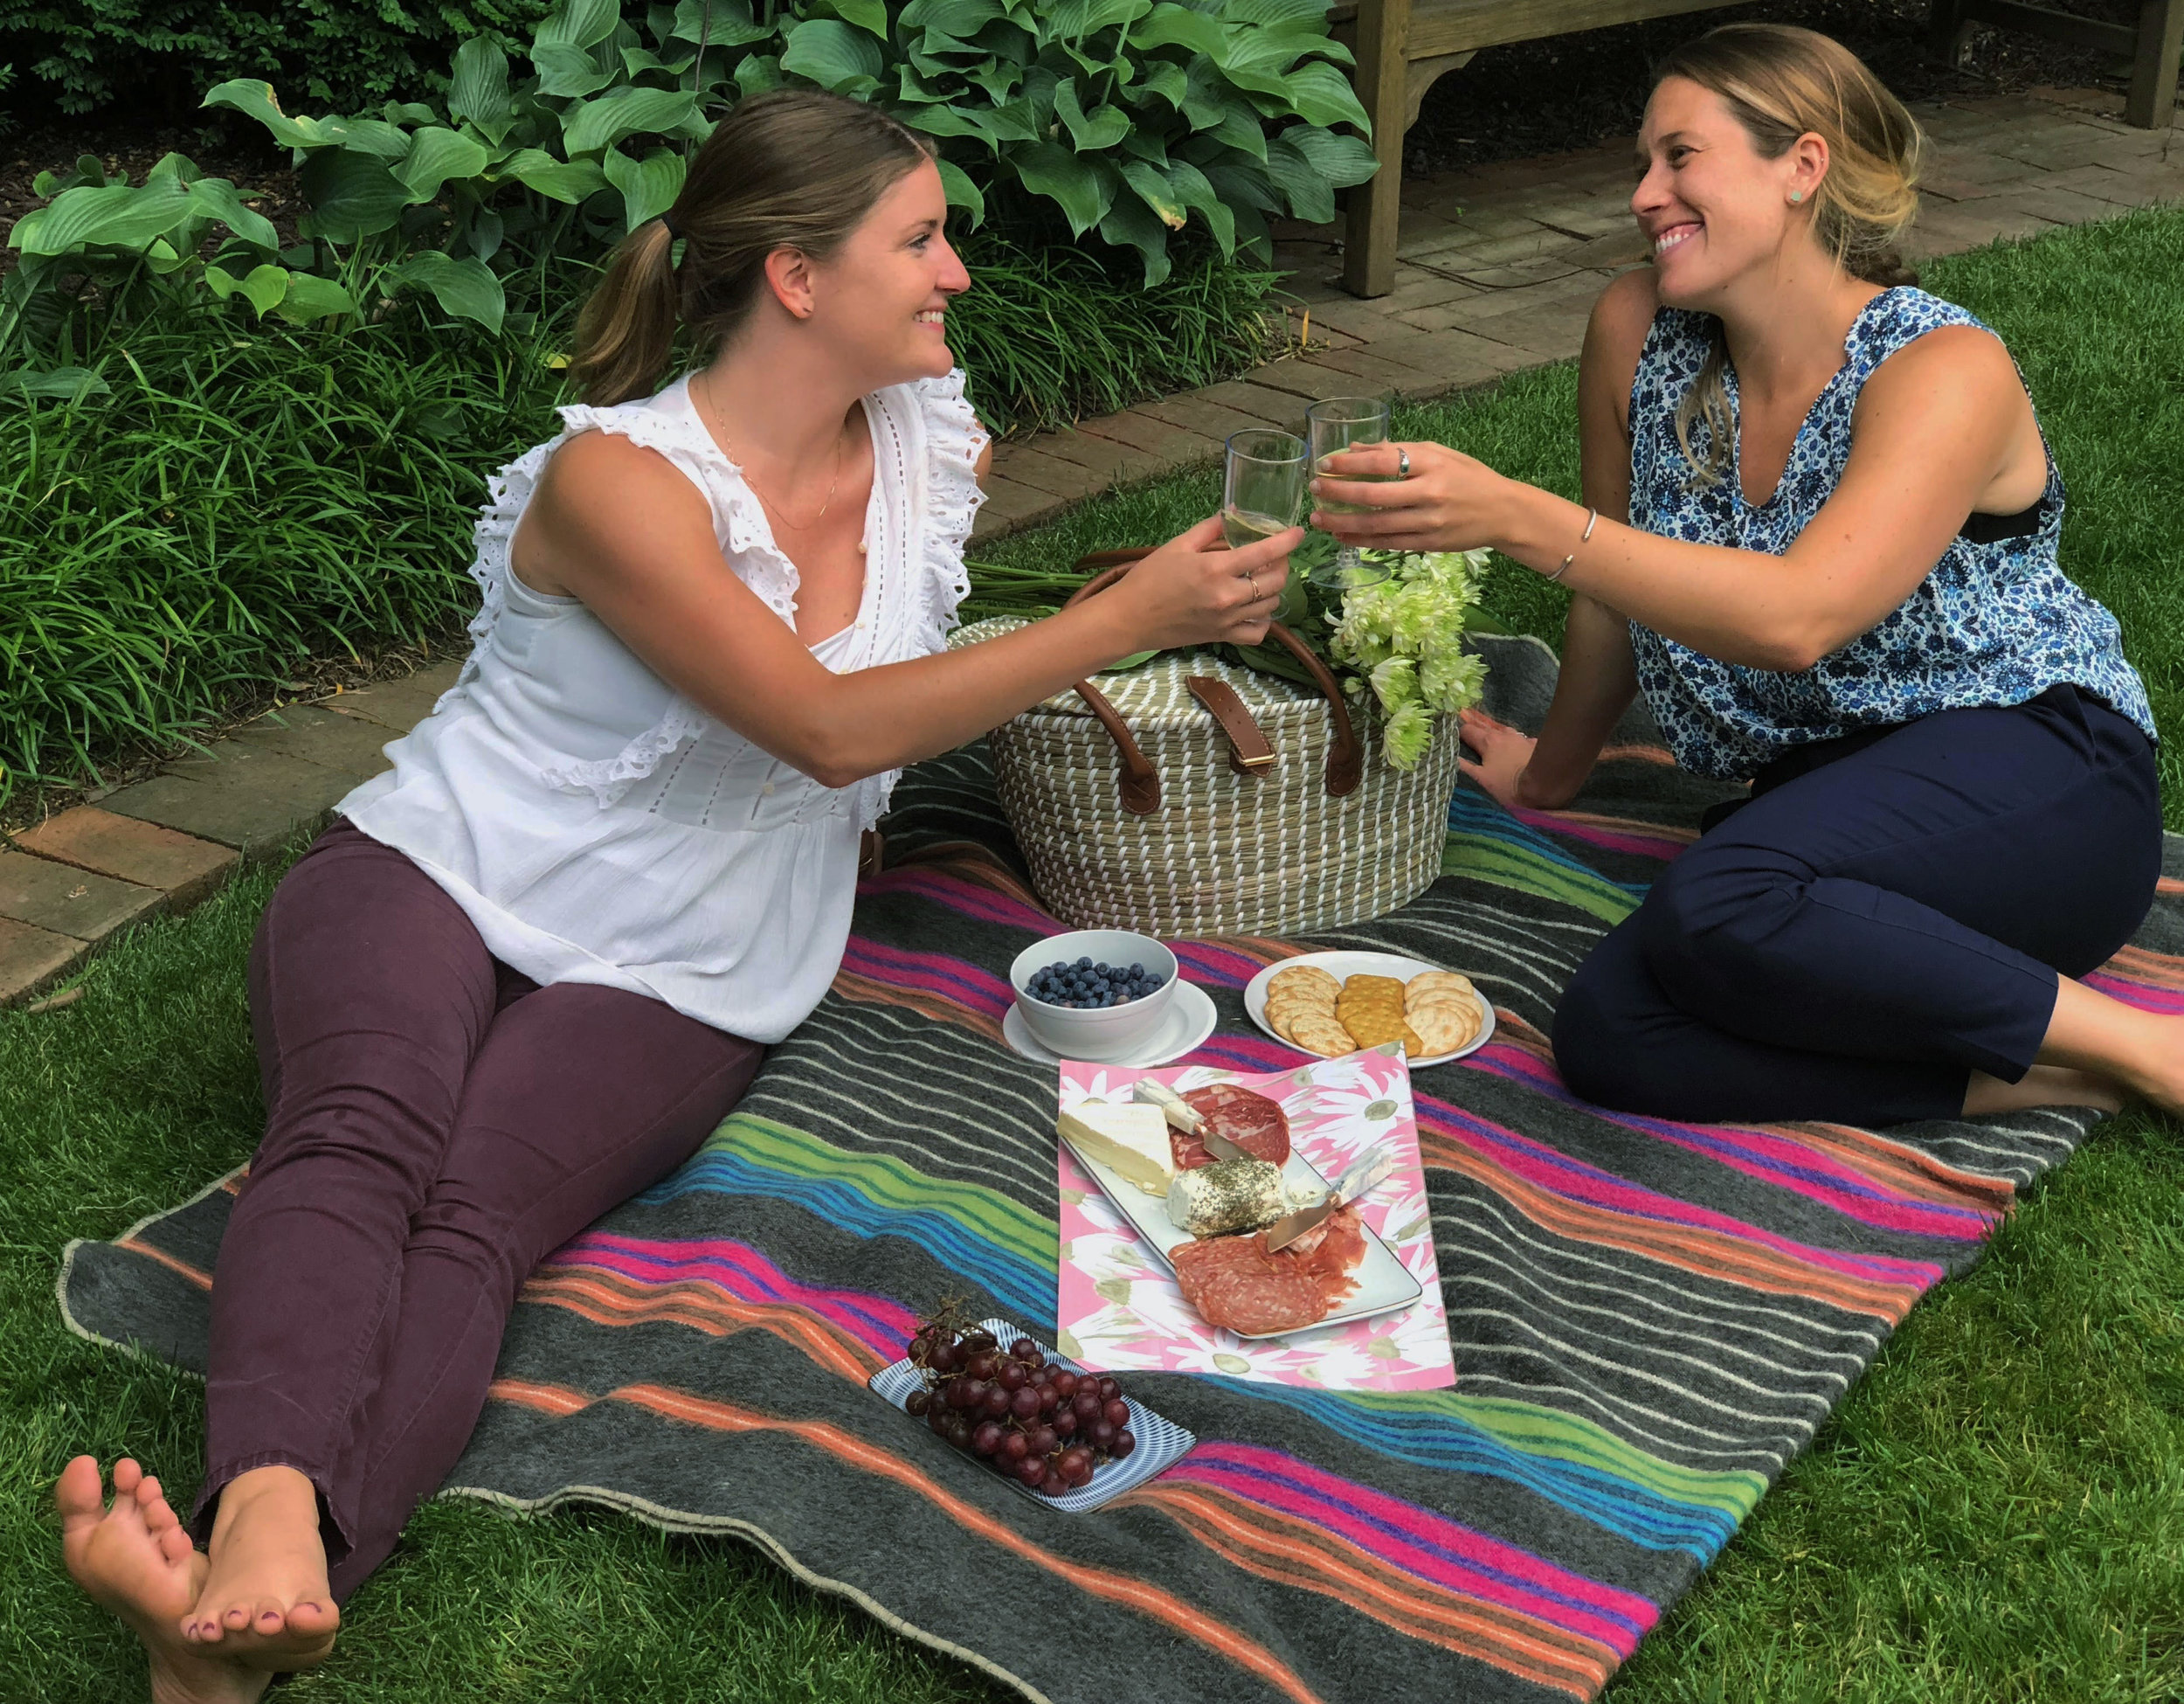 lucy-grymes-blog-picture-perfect-picnic-location.jpg